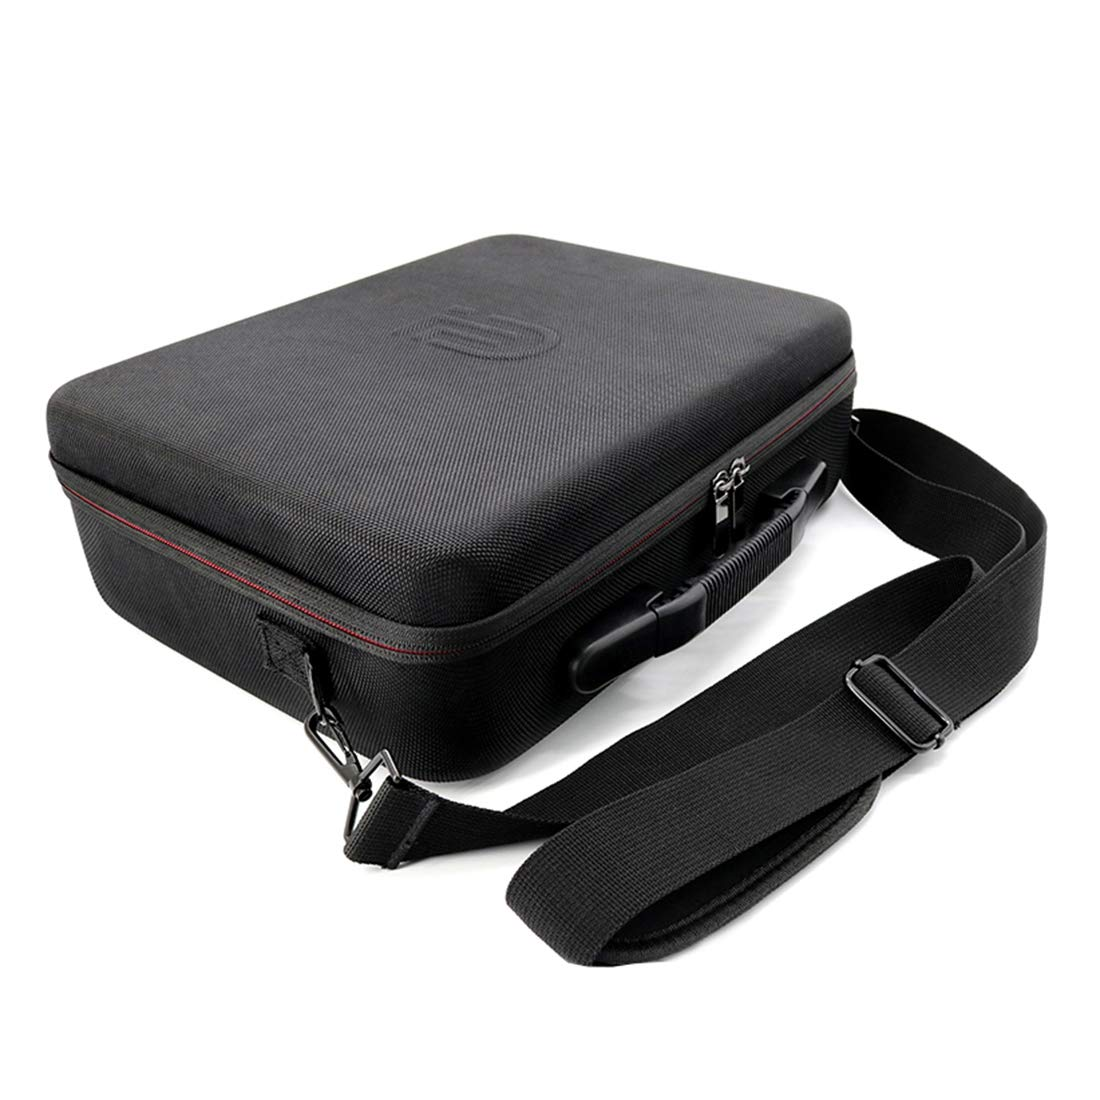 Yamix Shoulder Bag Travel Bag Carrying Case Carrying Bag with 4 Batteries Storage Case for DJI Mavic 2 PRO/ Mavic 2 Zoom - 1680D by Yamix (Image #7)